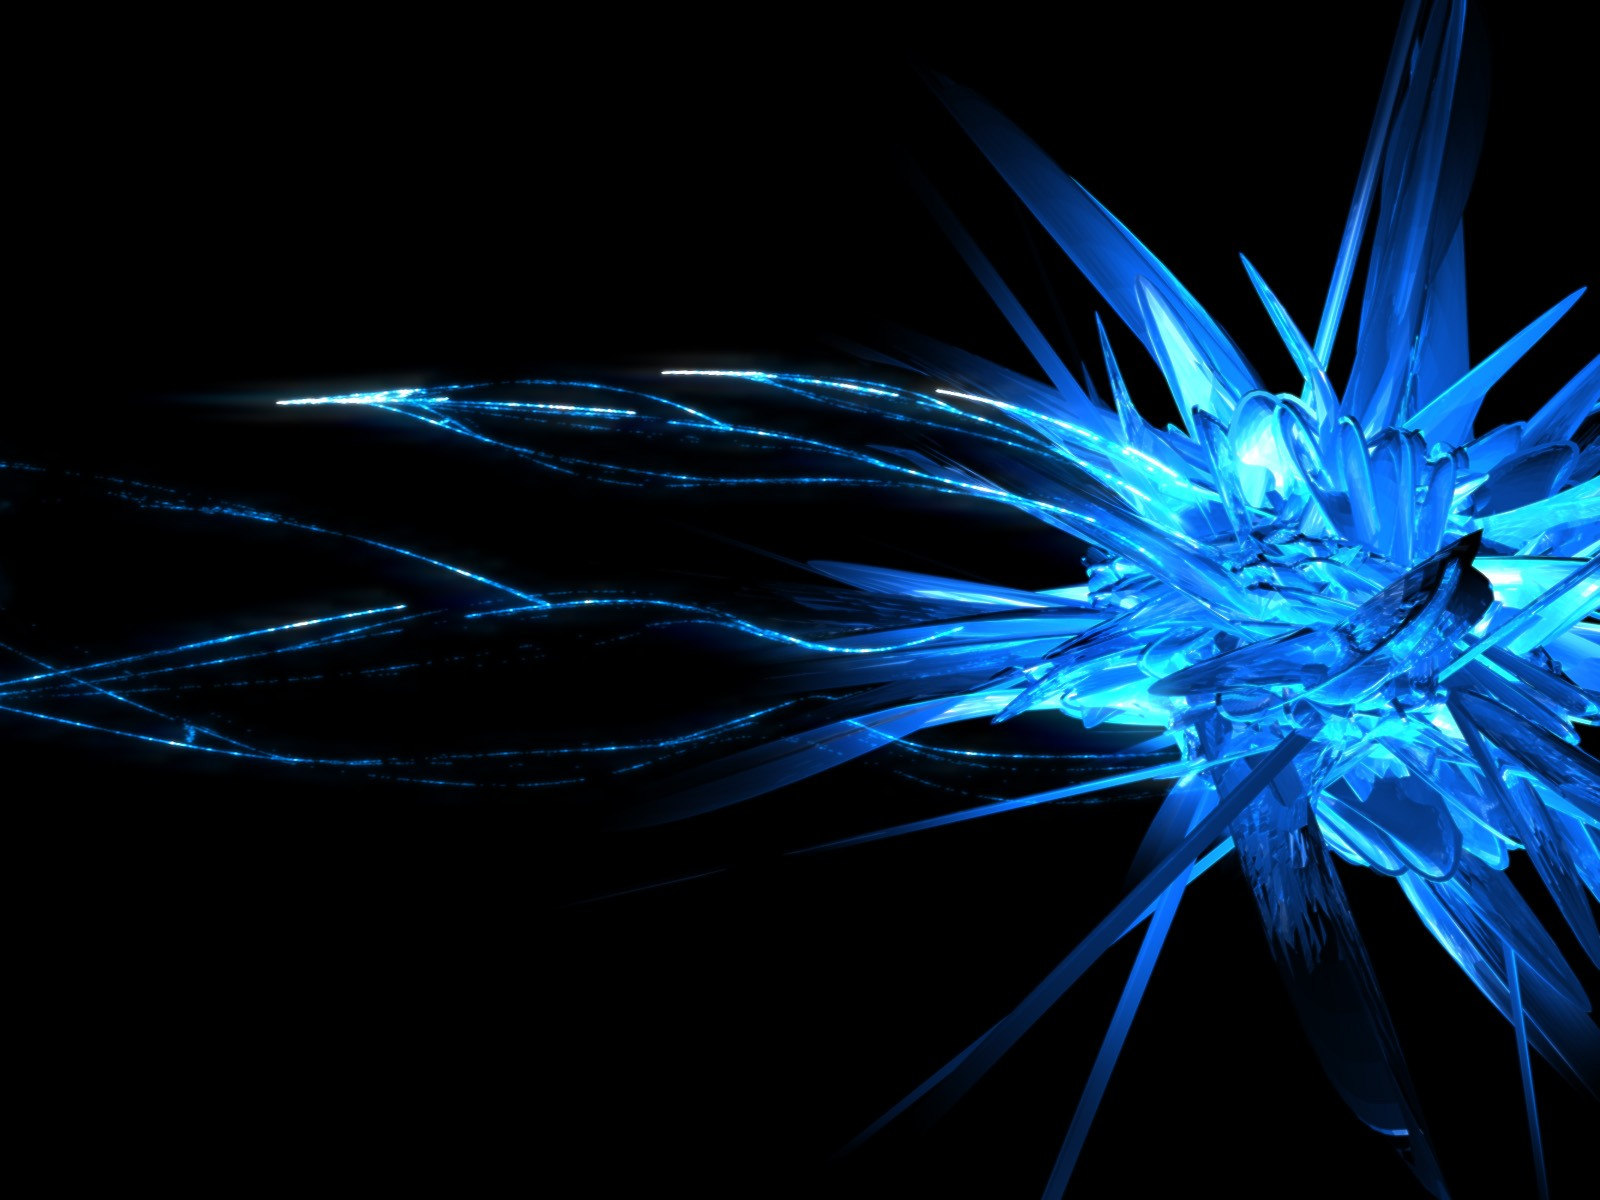 Blue crystal wallpaper wallpapersafari - Desktop wallpaper 1600x1200 ...